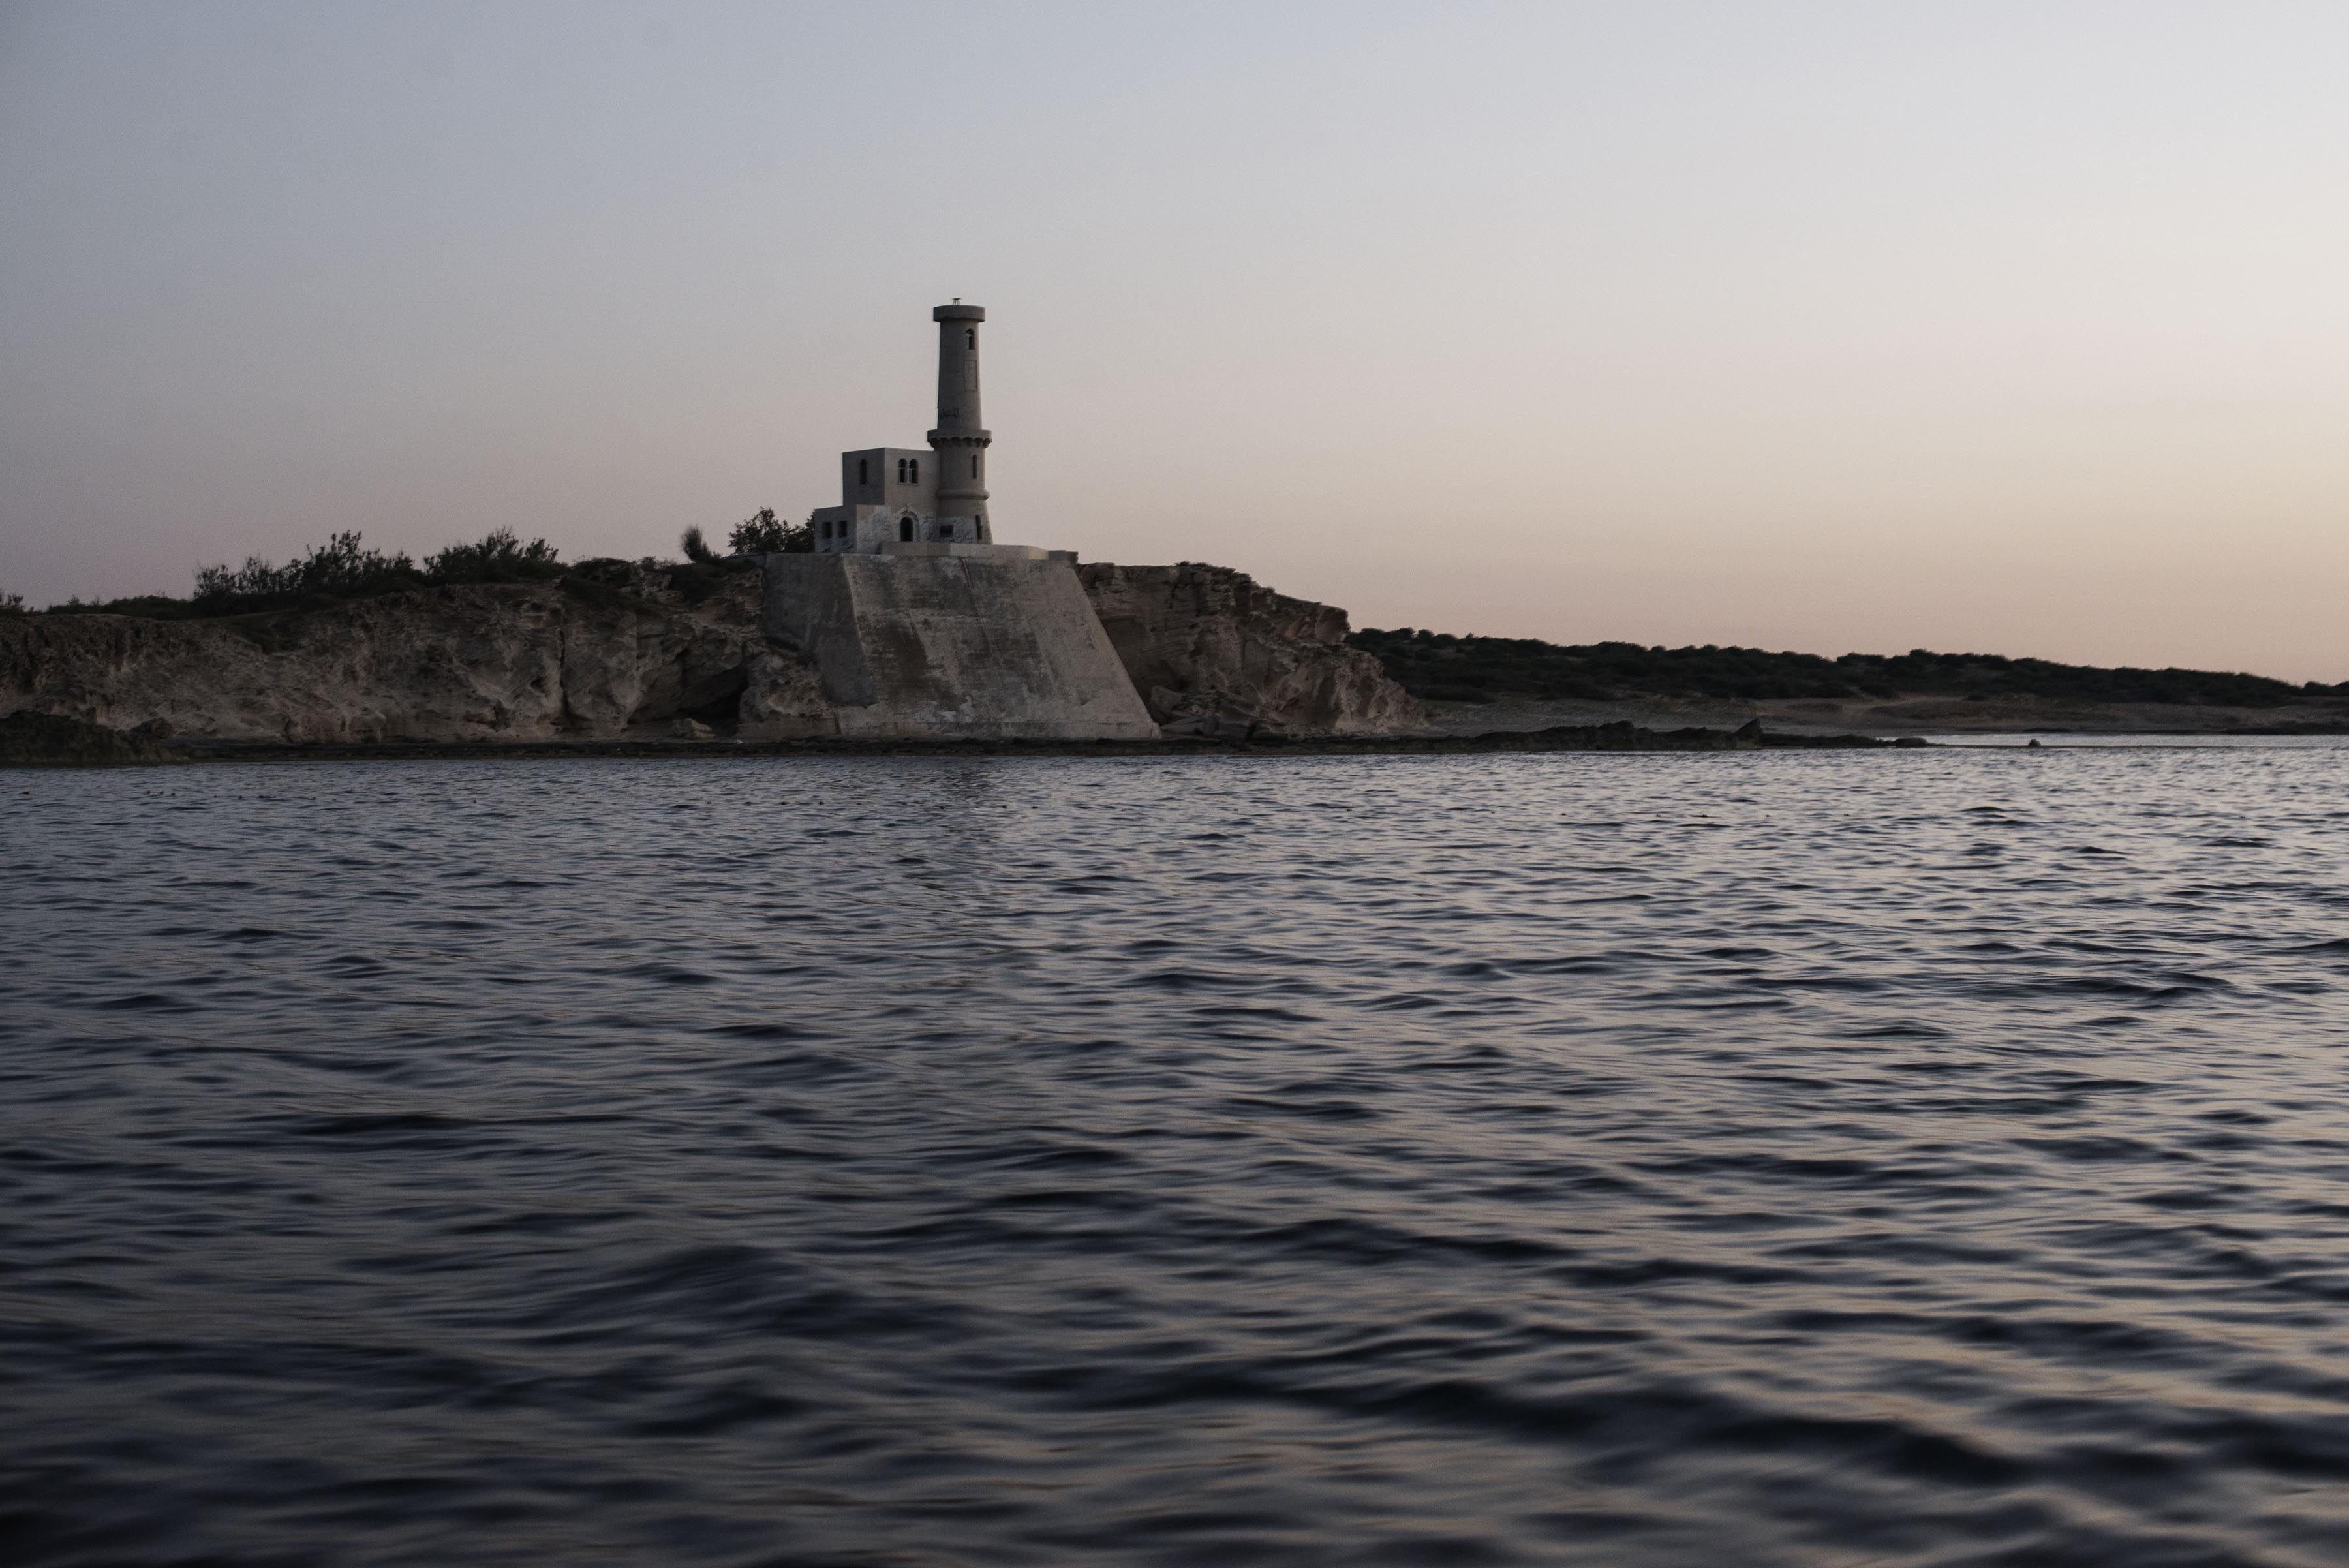 A non-functioning lighthouse on the beach of Garabulli. This part of the coast is often used by migrants to start their journey by sea in an effort to reach Italy. [Alessio Romenzi/CESURA/Al Jazeera]